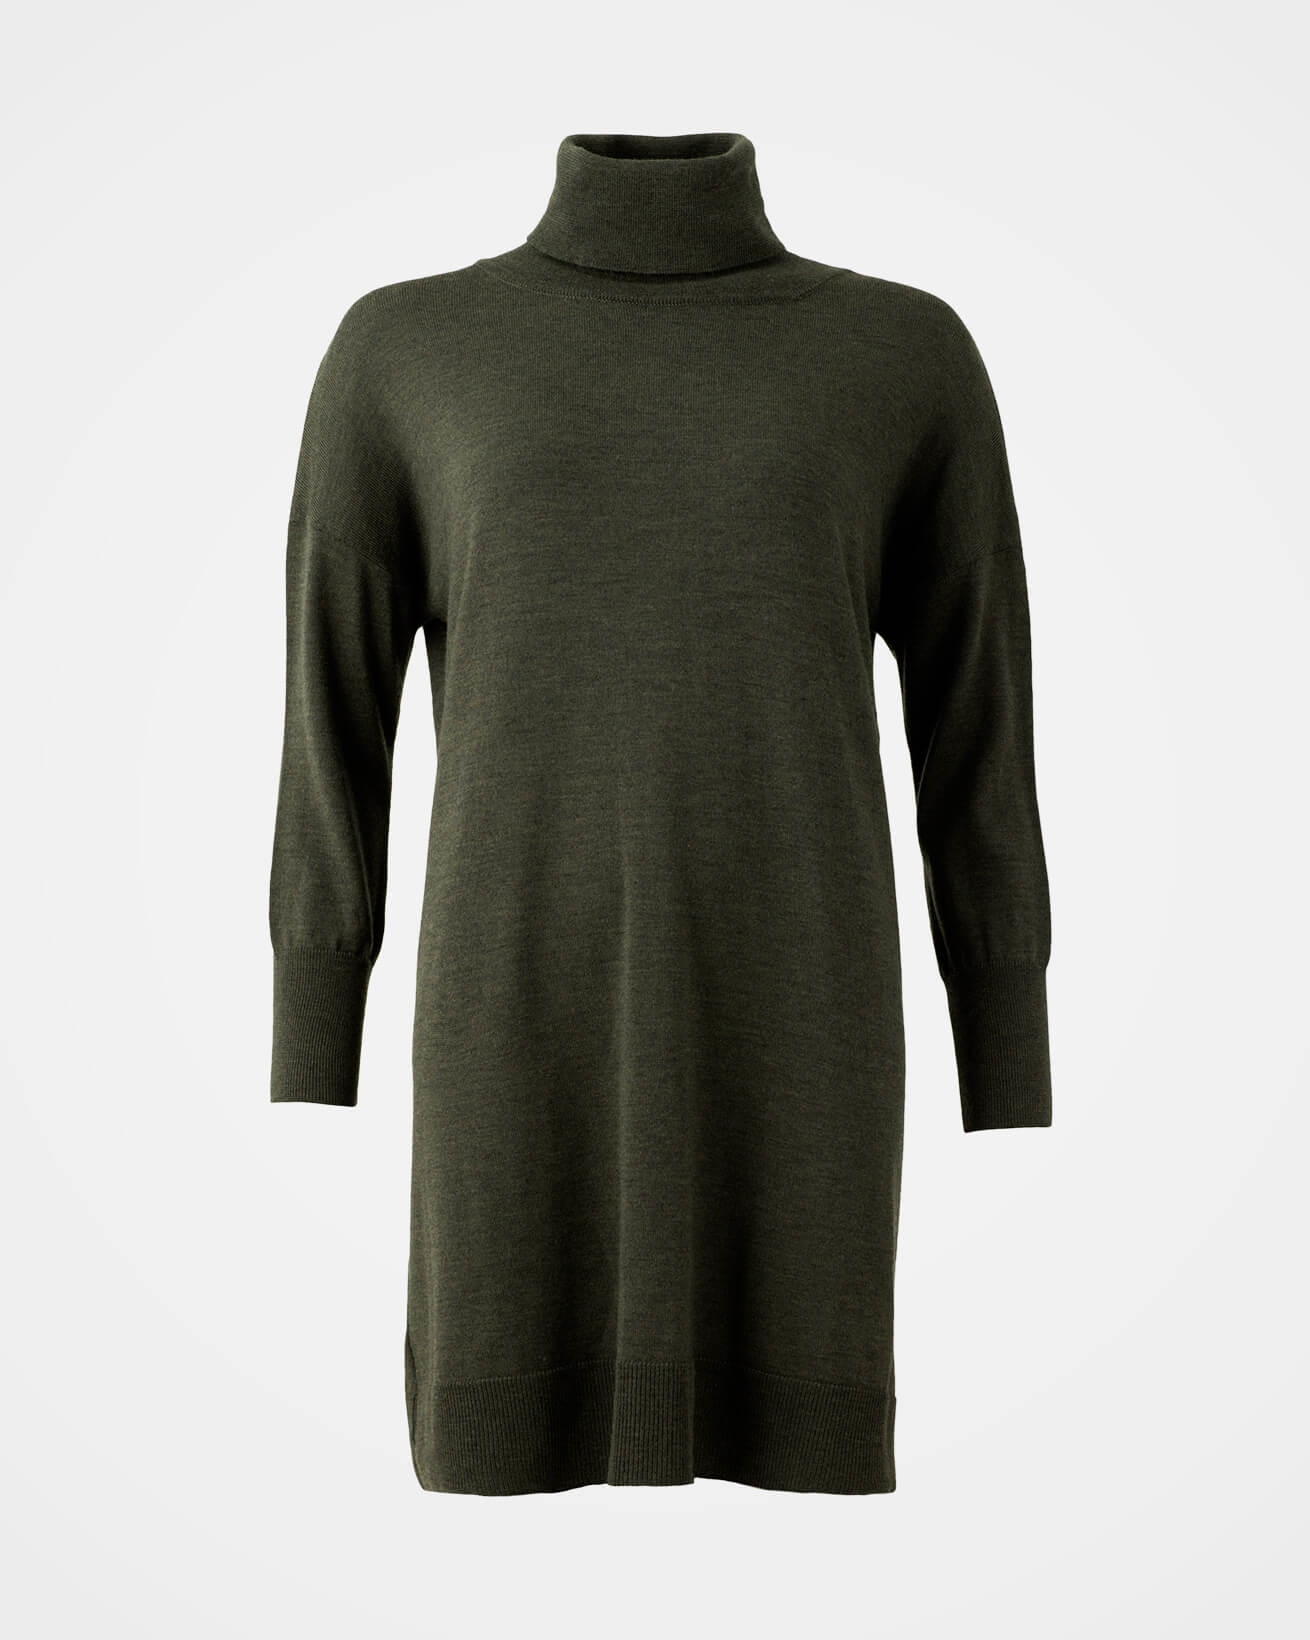 Slouchy Fine Knit Roll Neck Dress - Size Small - Olive - 1639